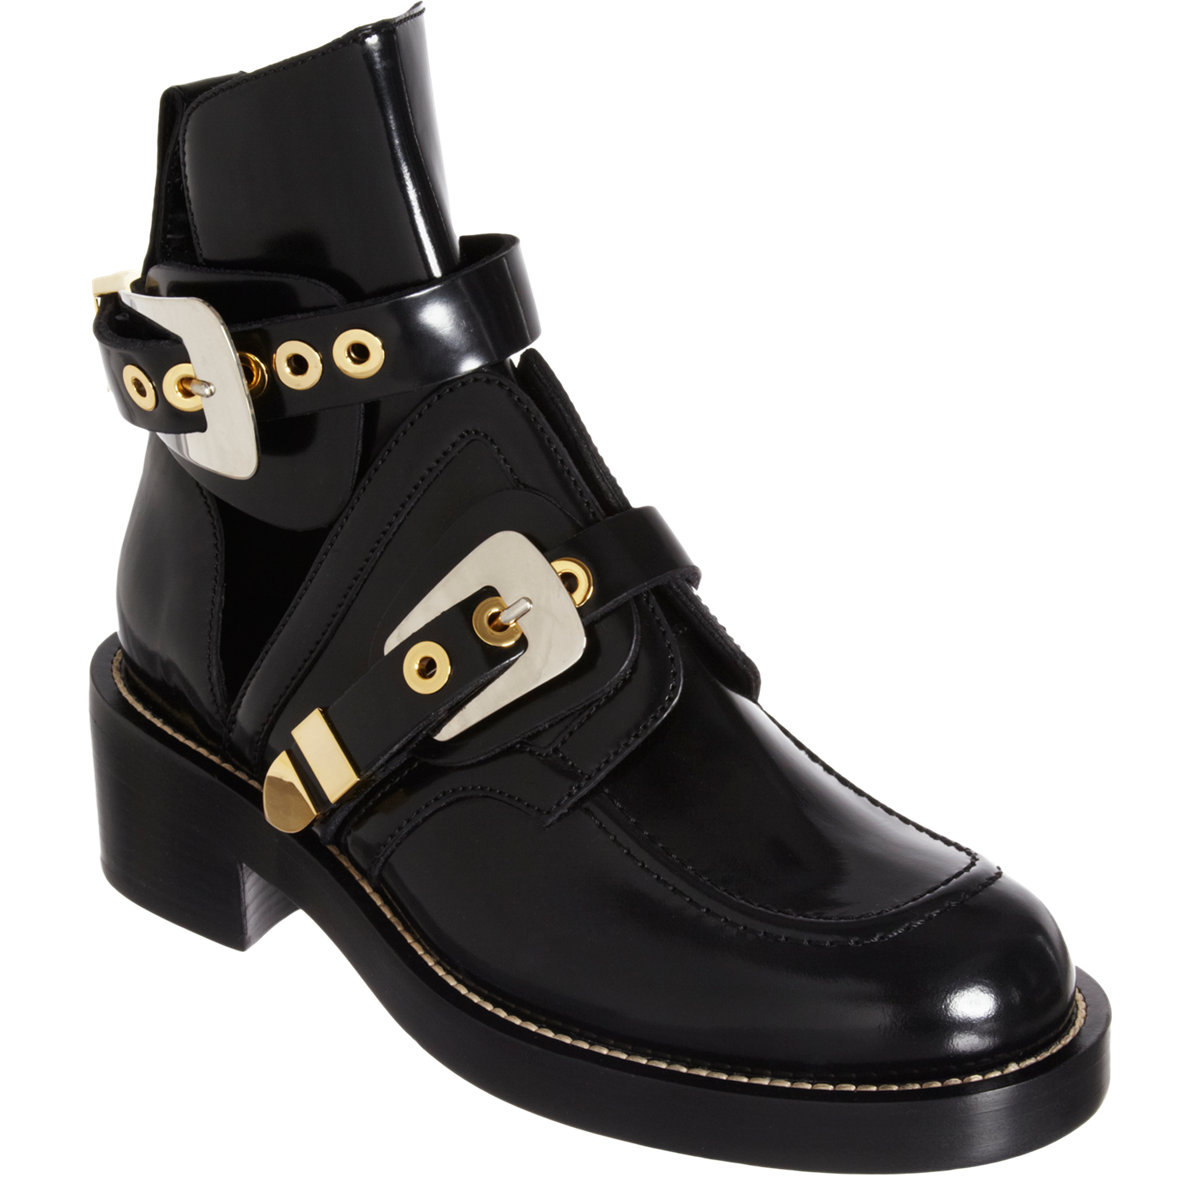 ... balenciaga arena shoes wholesalers. Discover Balenciaga s collections  ... d2a2aaa30d2